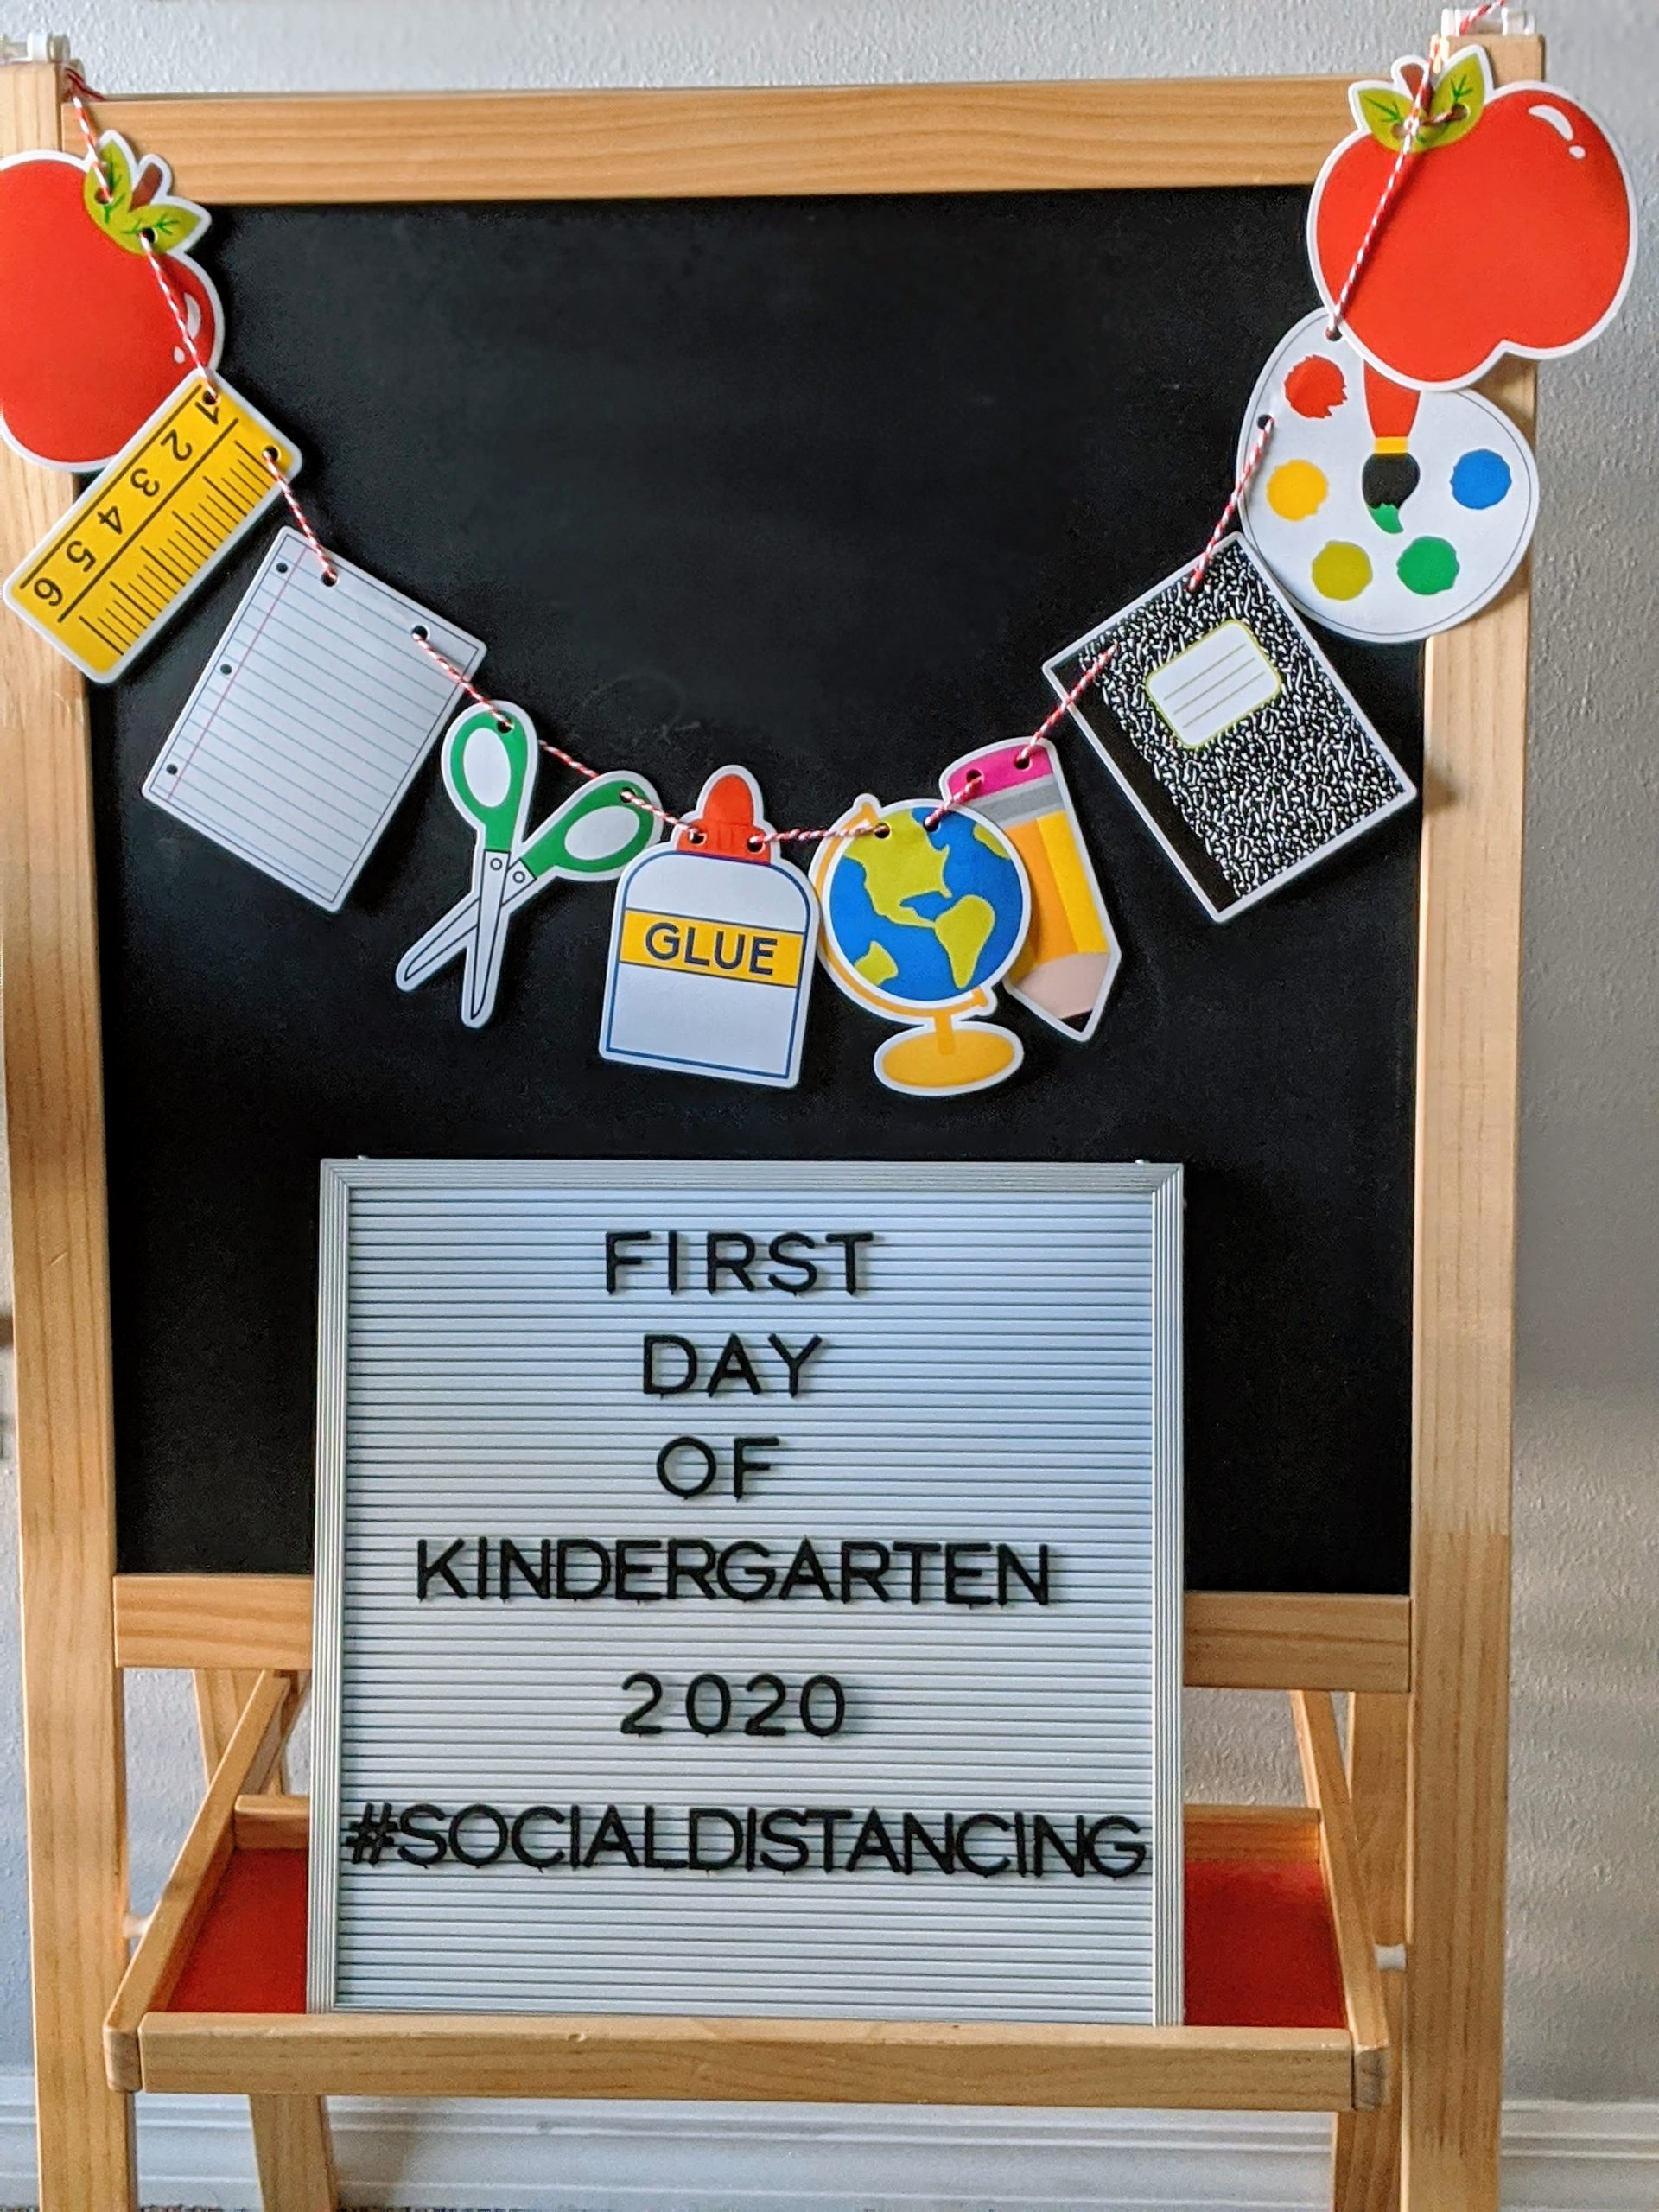 chalkboard with back to school banner and letter board with first day of school information